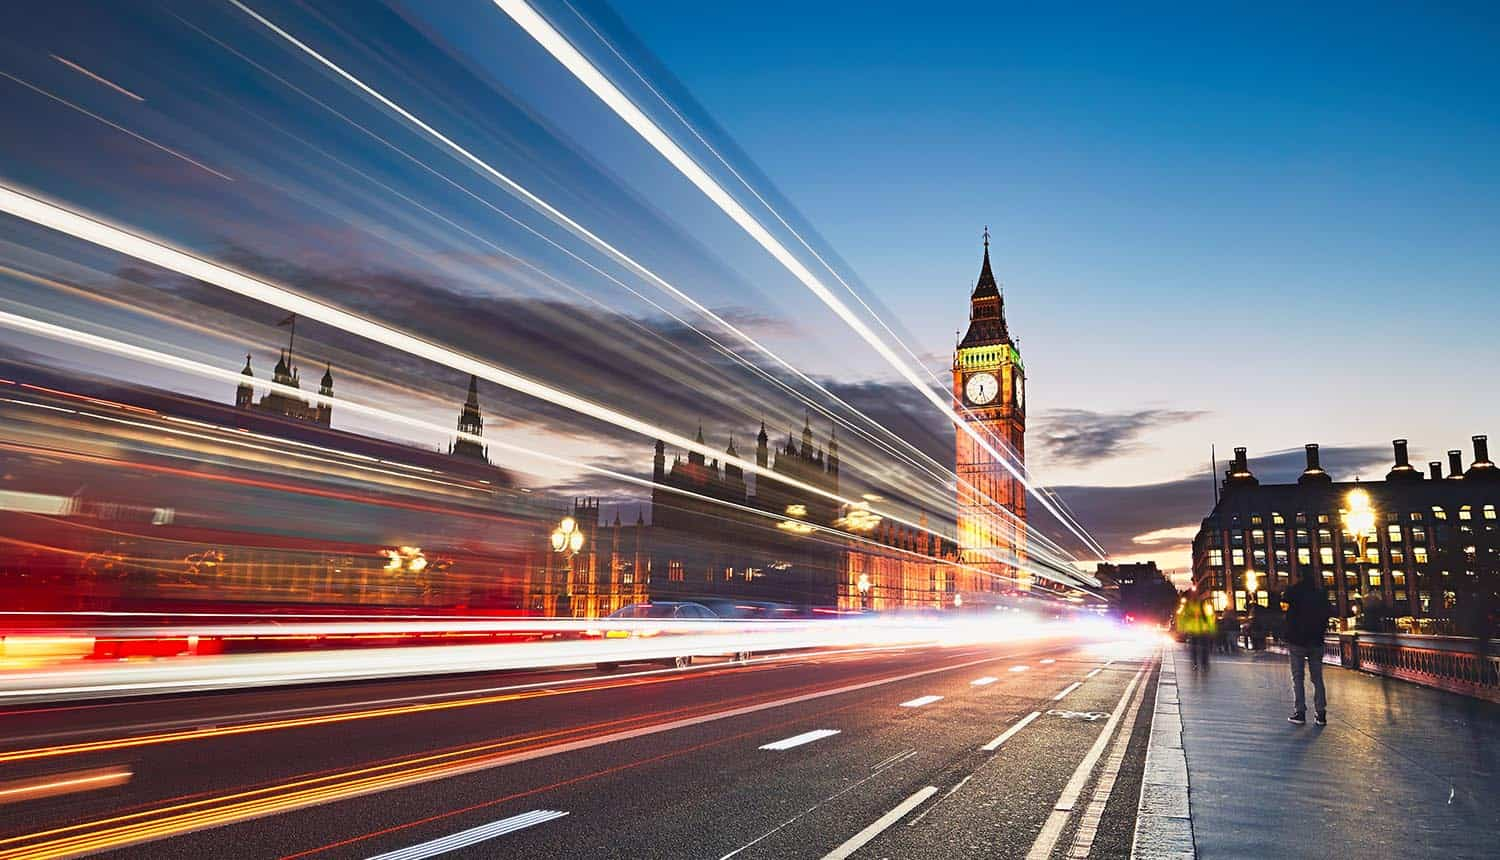 Light trails on the Westminster bridge after sunset showing Brexit impact on data transfers post Schrems II